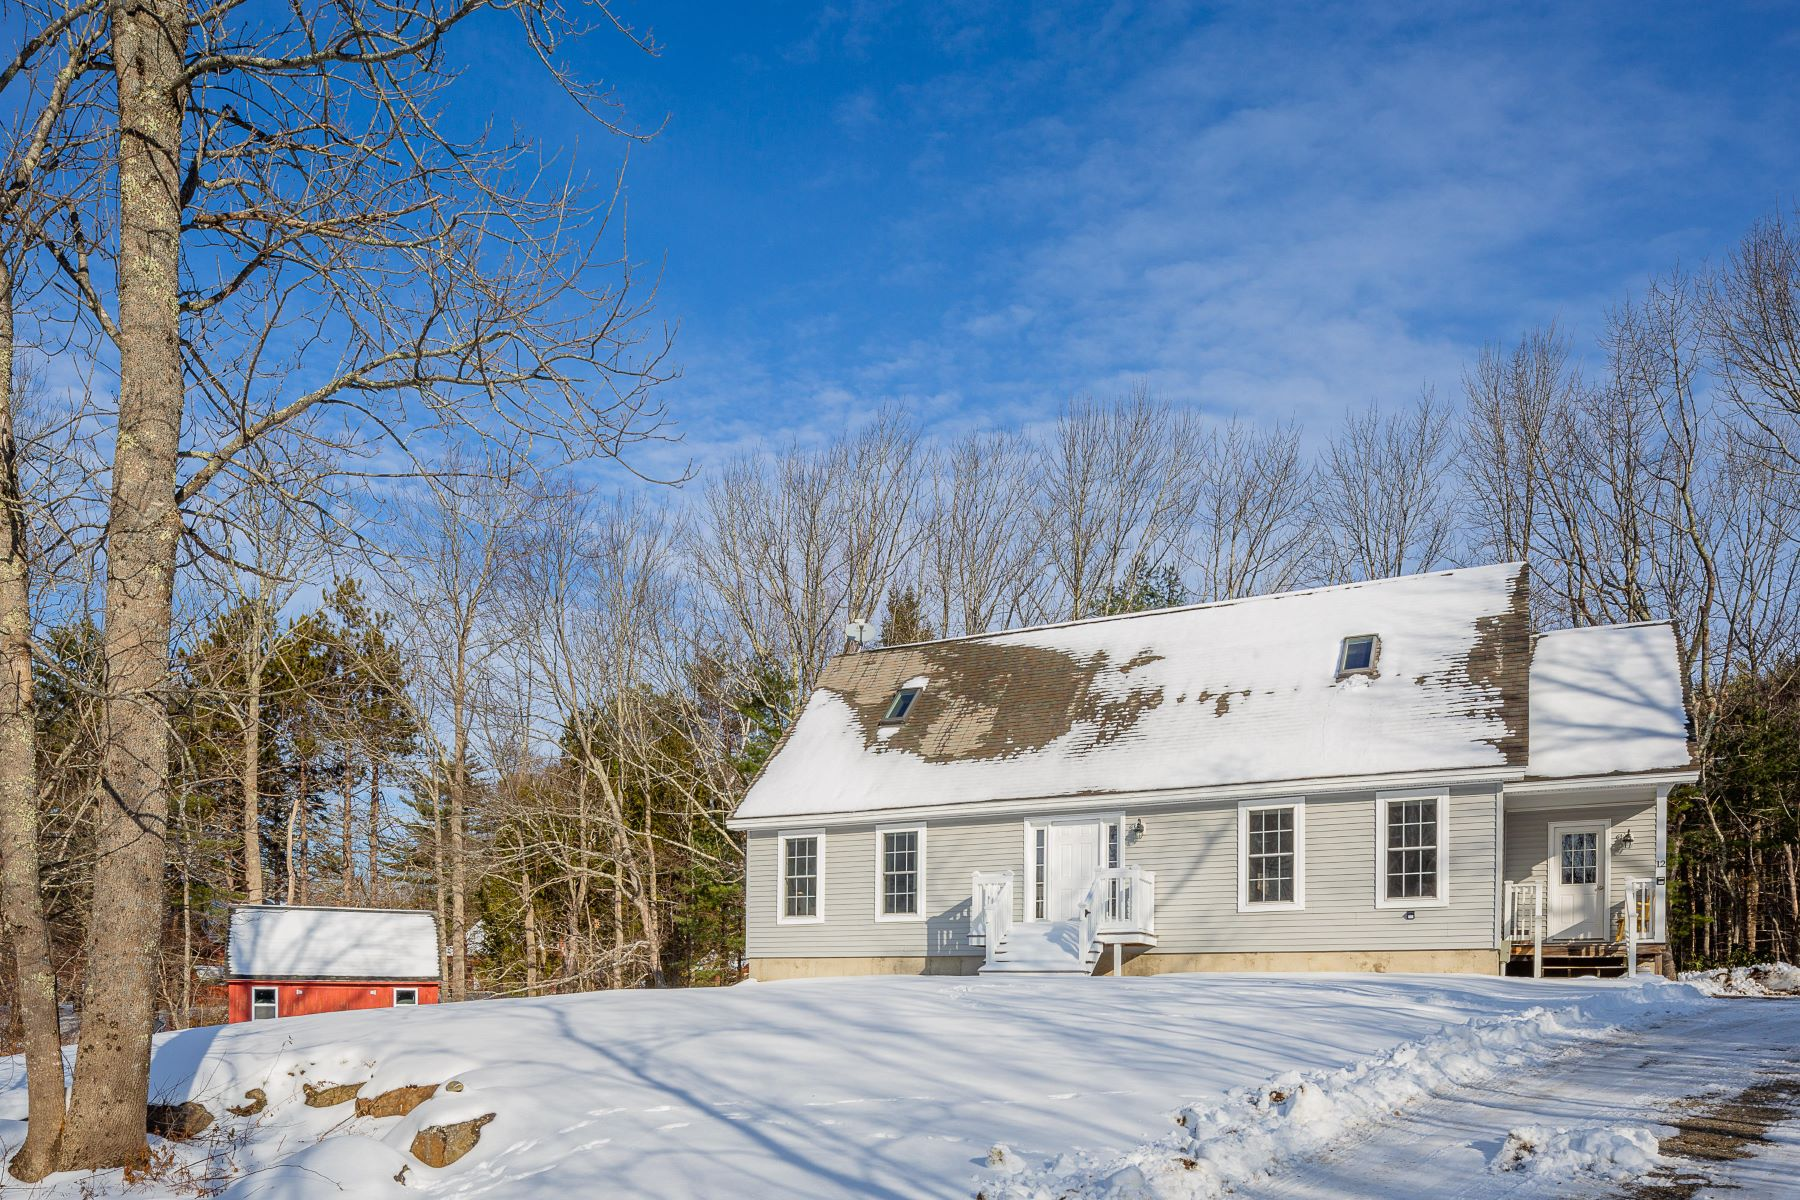 Single Family Homes for Sale at 12 Orchard Way Rockport, Maine 04856 United States